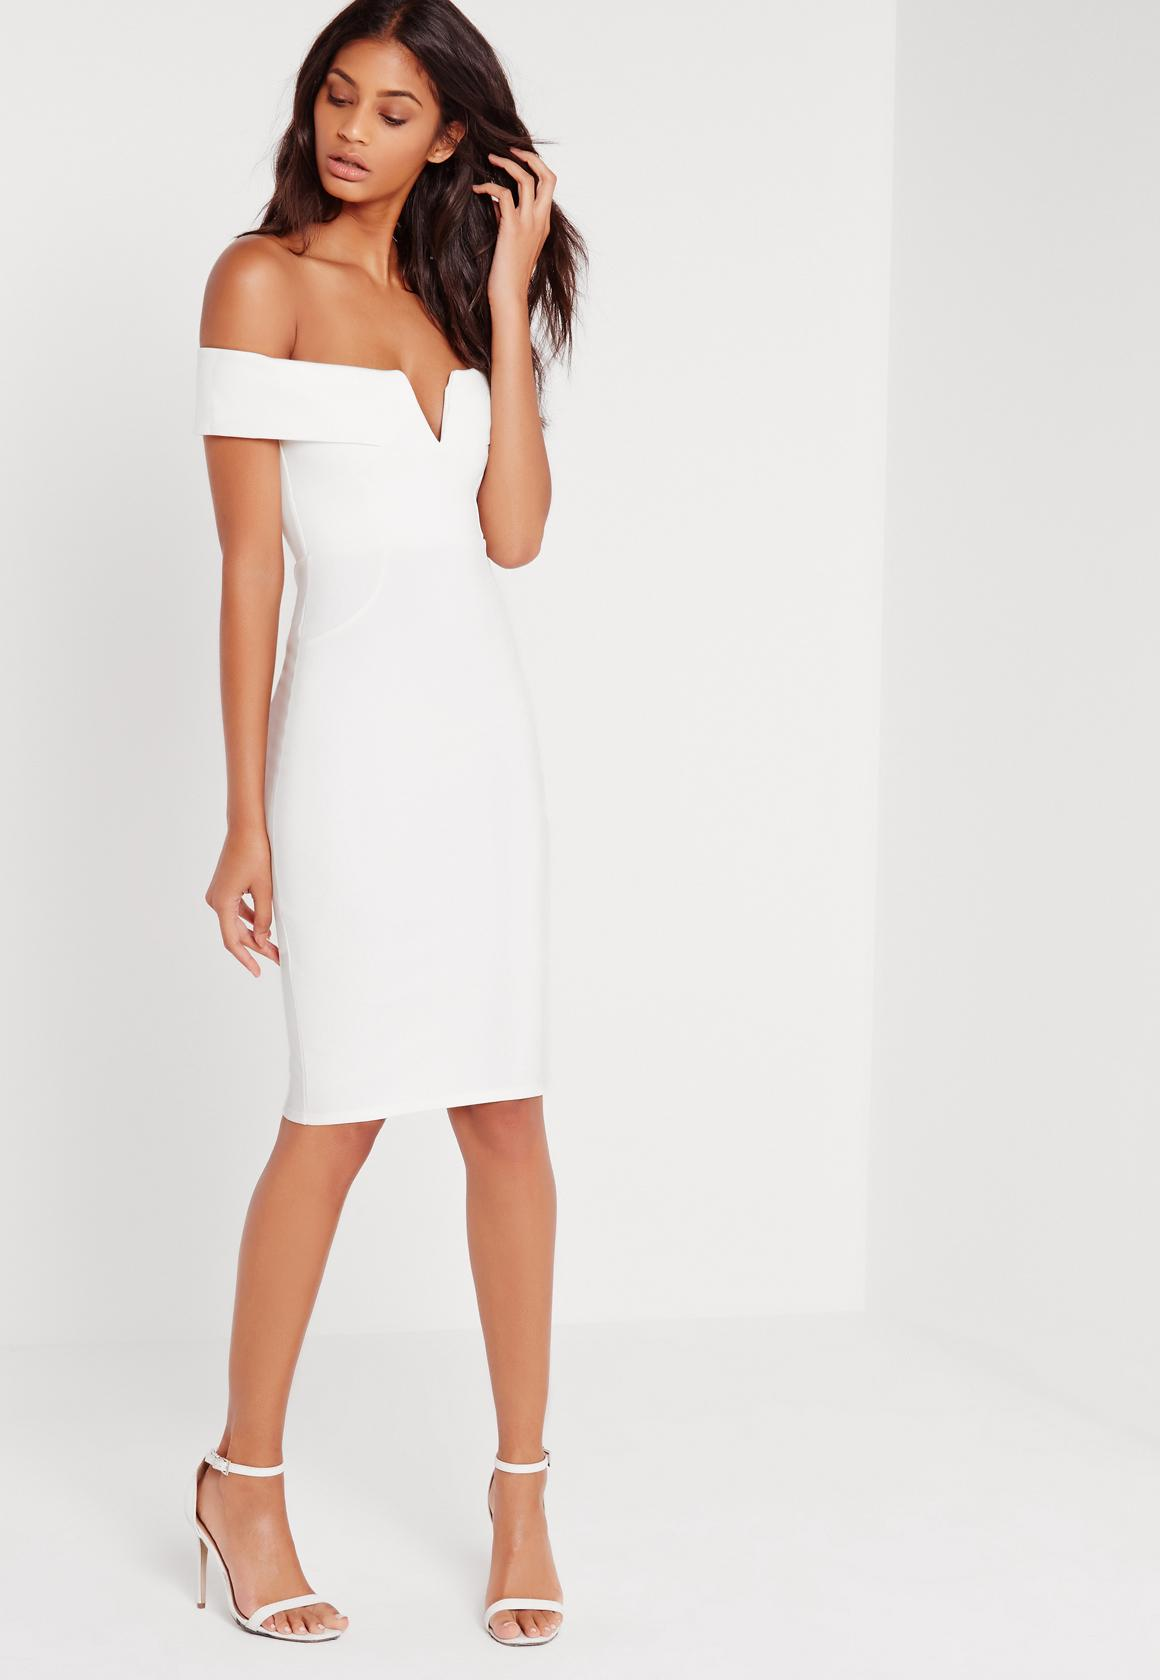 Wedding White Graduation Dresses graduation dresses university grad ball dress missguided v front bardot midi white